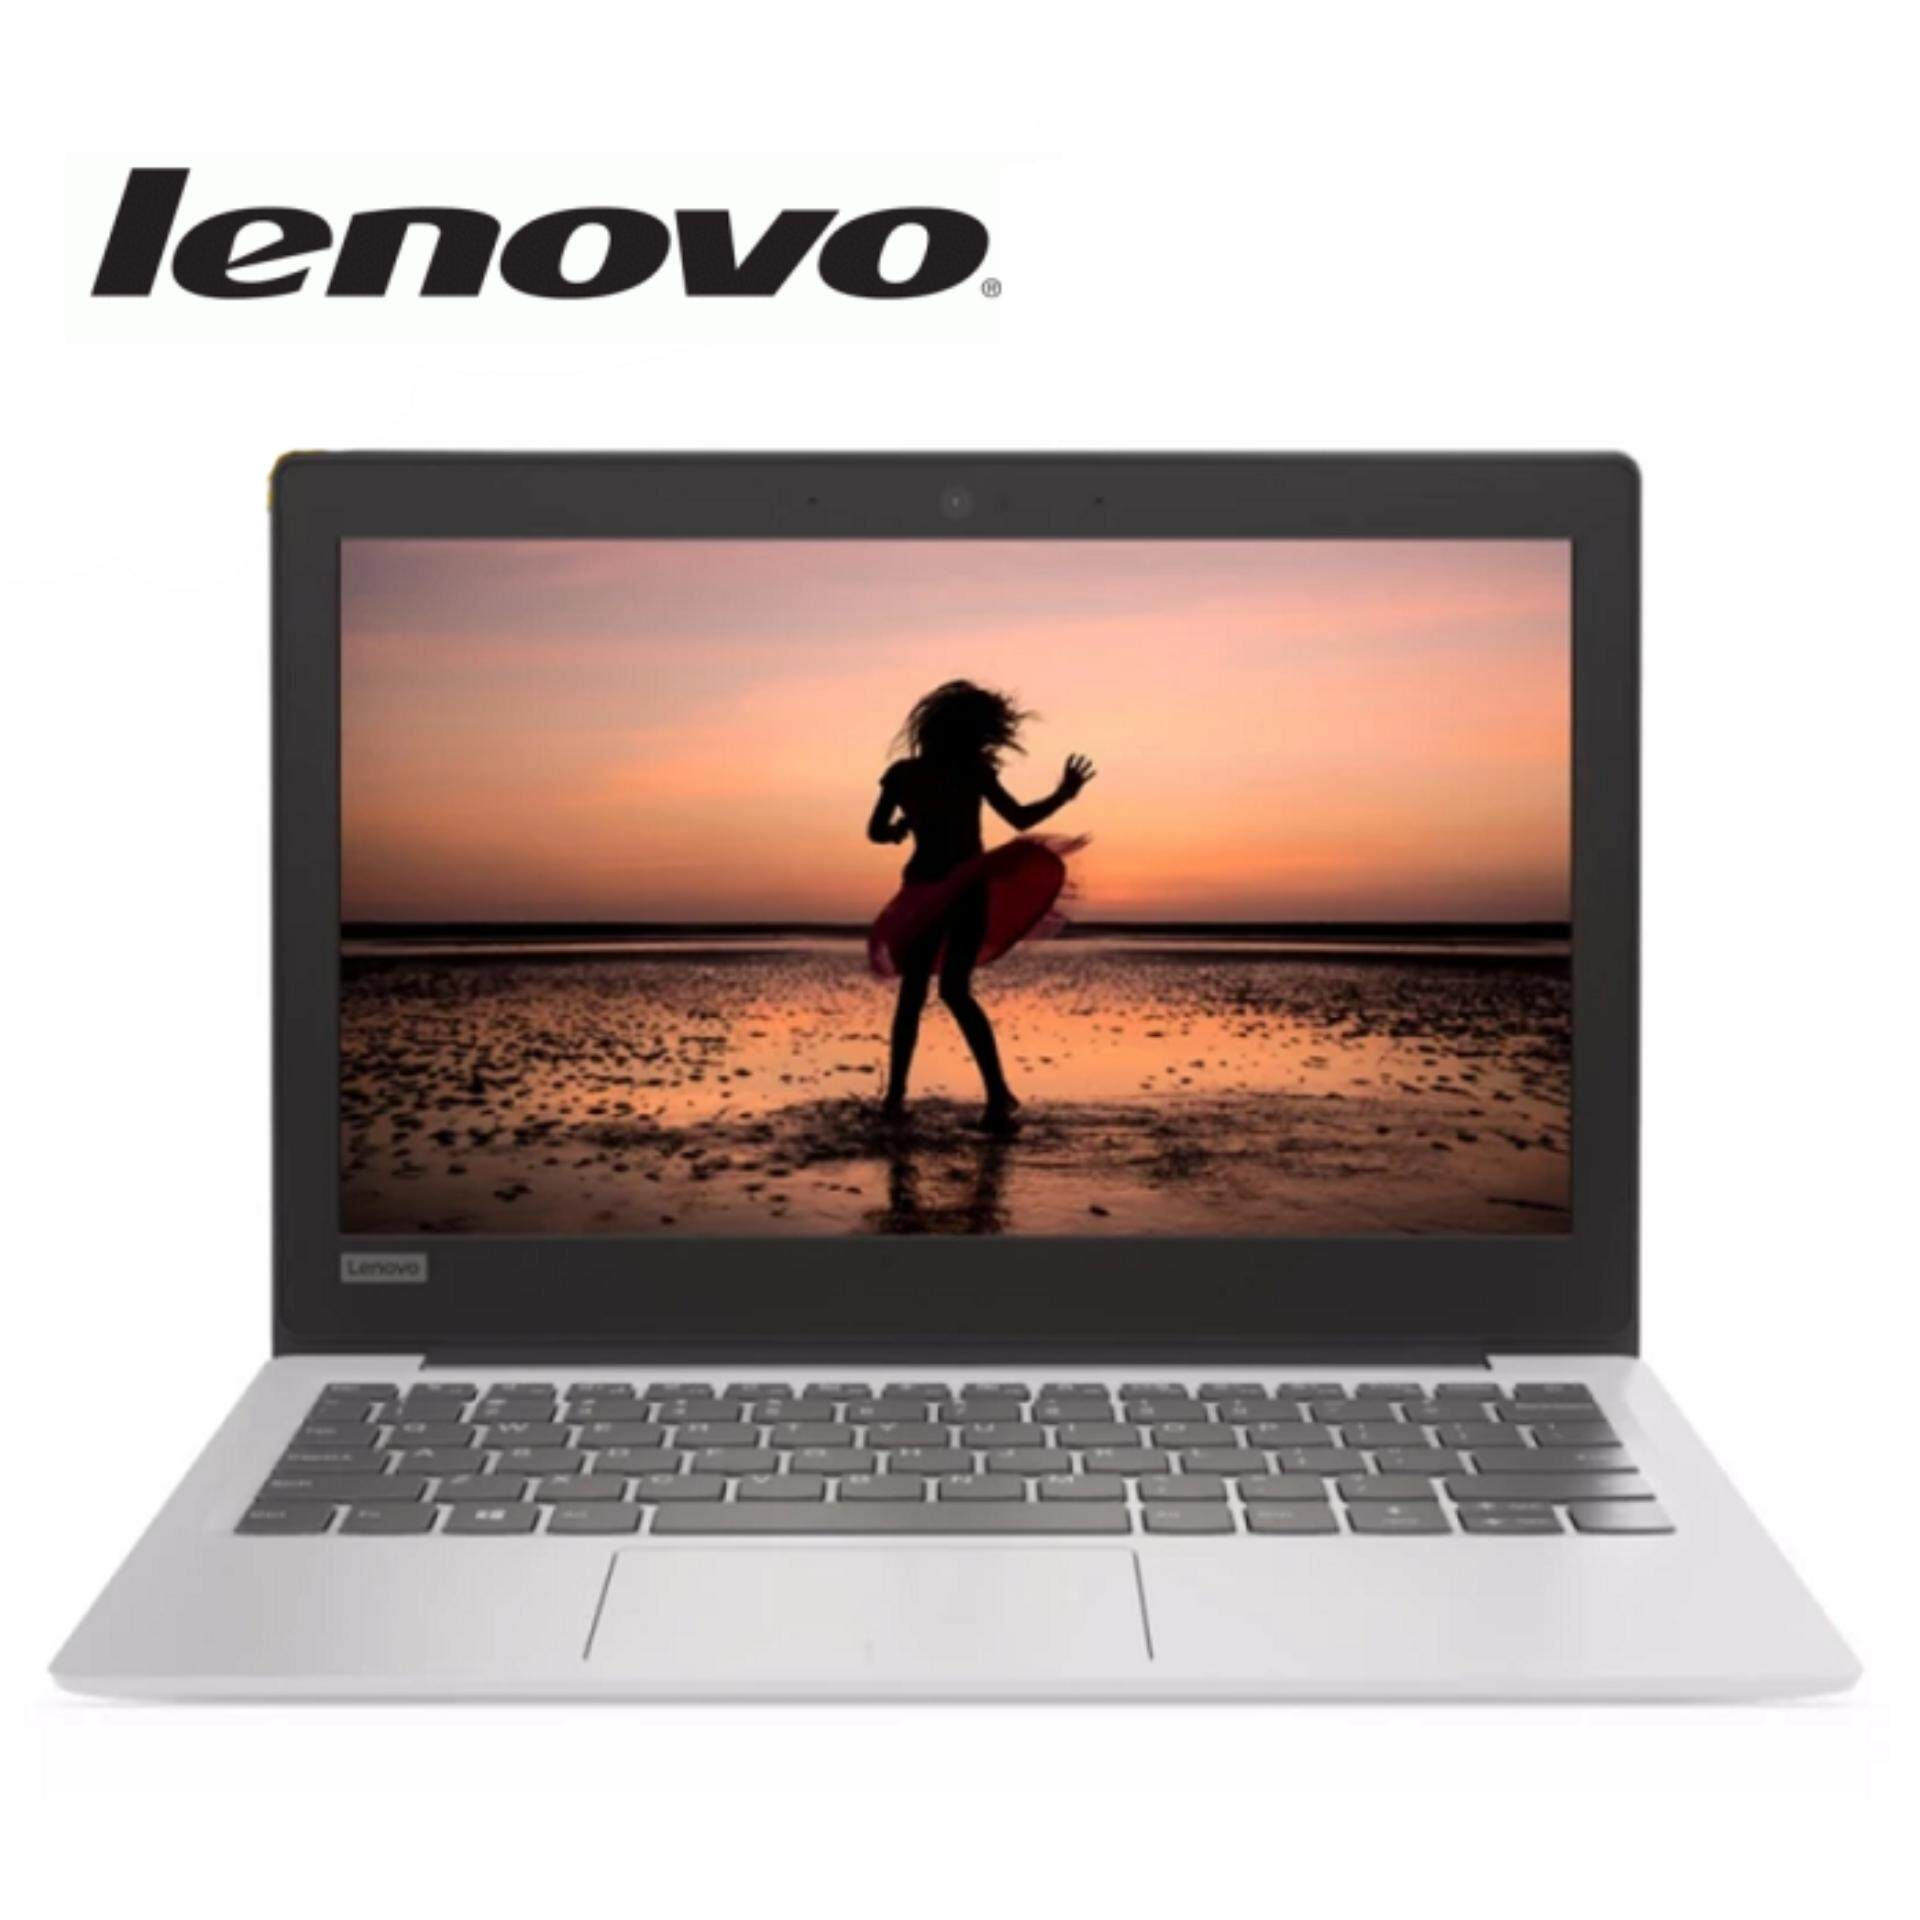 Lenovo IdeaPad 120S-11IAP 81A400AMMJ Laptop(Celeron N3350/4GB/64GB/Intel Graphic/11.6˝HD/W10)White Malaysia